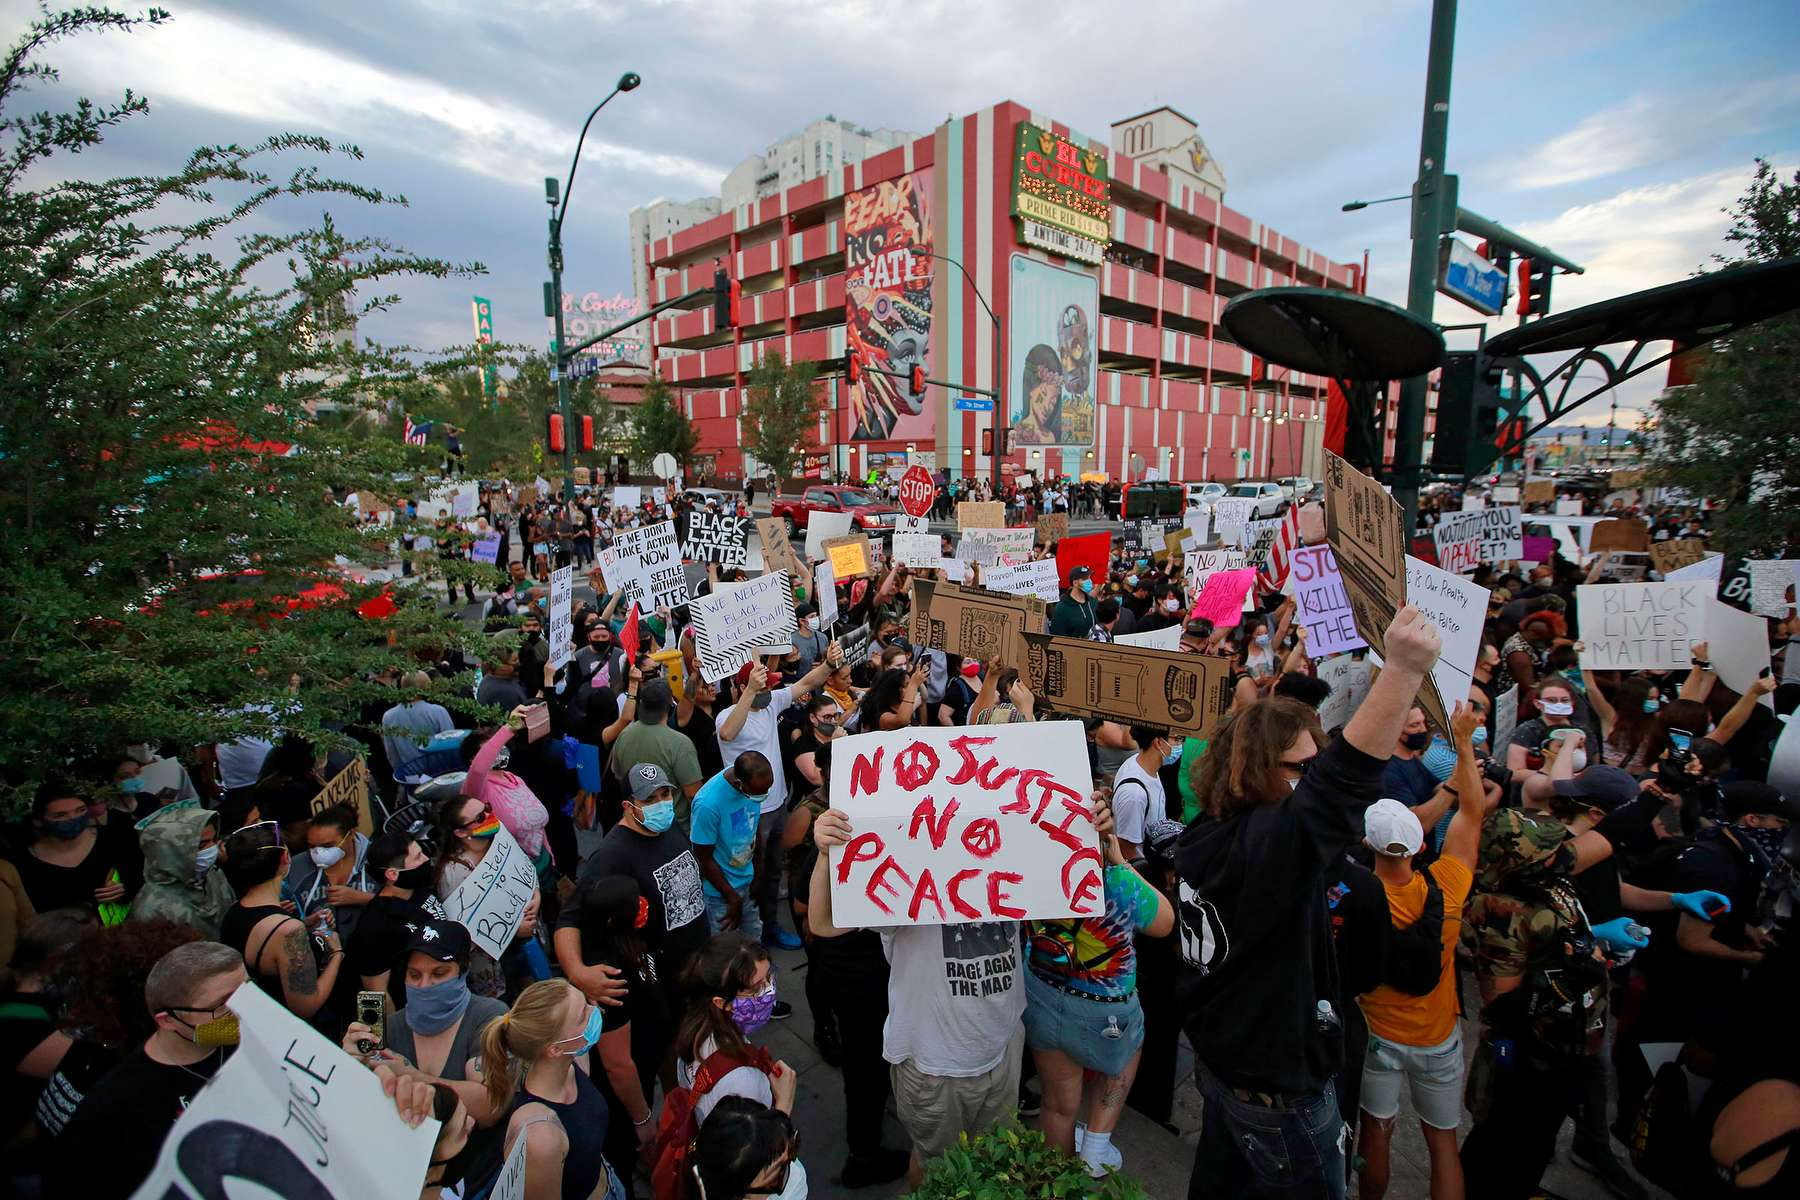 A crowd gathers for a Black Lives Matter protest Saturday, May 30, in downtown Las Vegas. The protest, which is one of many across the US this weekend, is in response to the recent death of Minneapolis man George Floyd, who died in police custody. (Ronda Churchill/ZUMA Press)